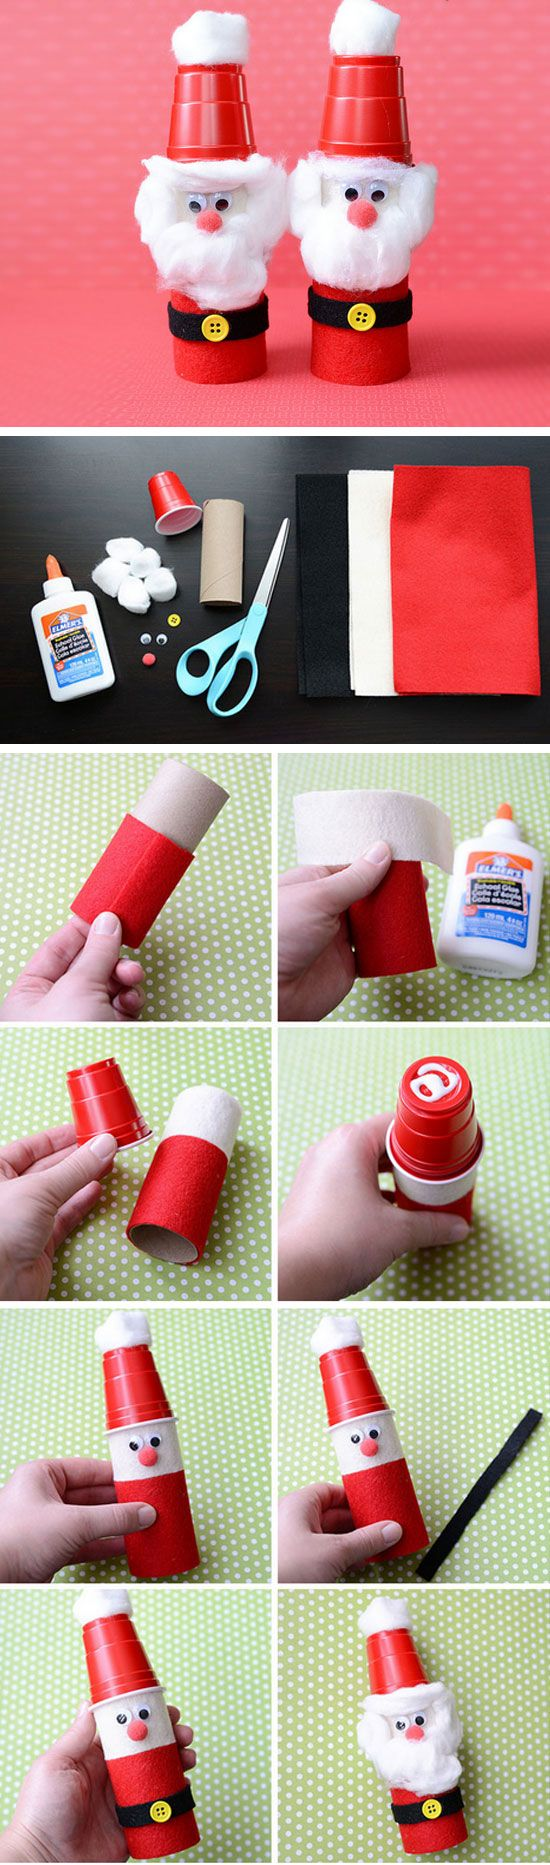 craft ideas using plastic cups 17 best ideas about plastic cups on decorating 6309